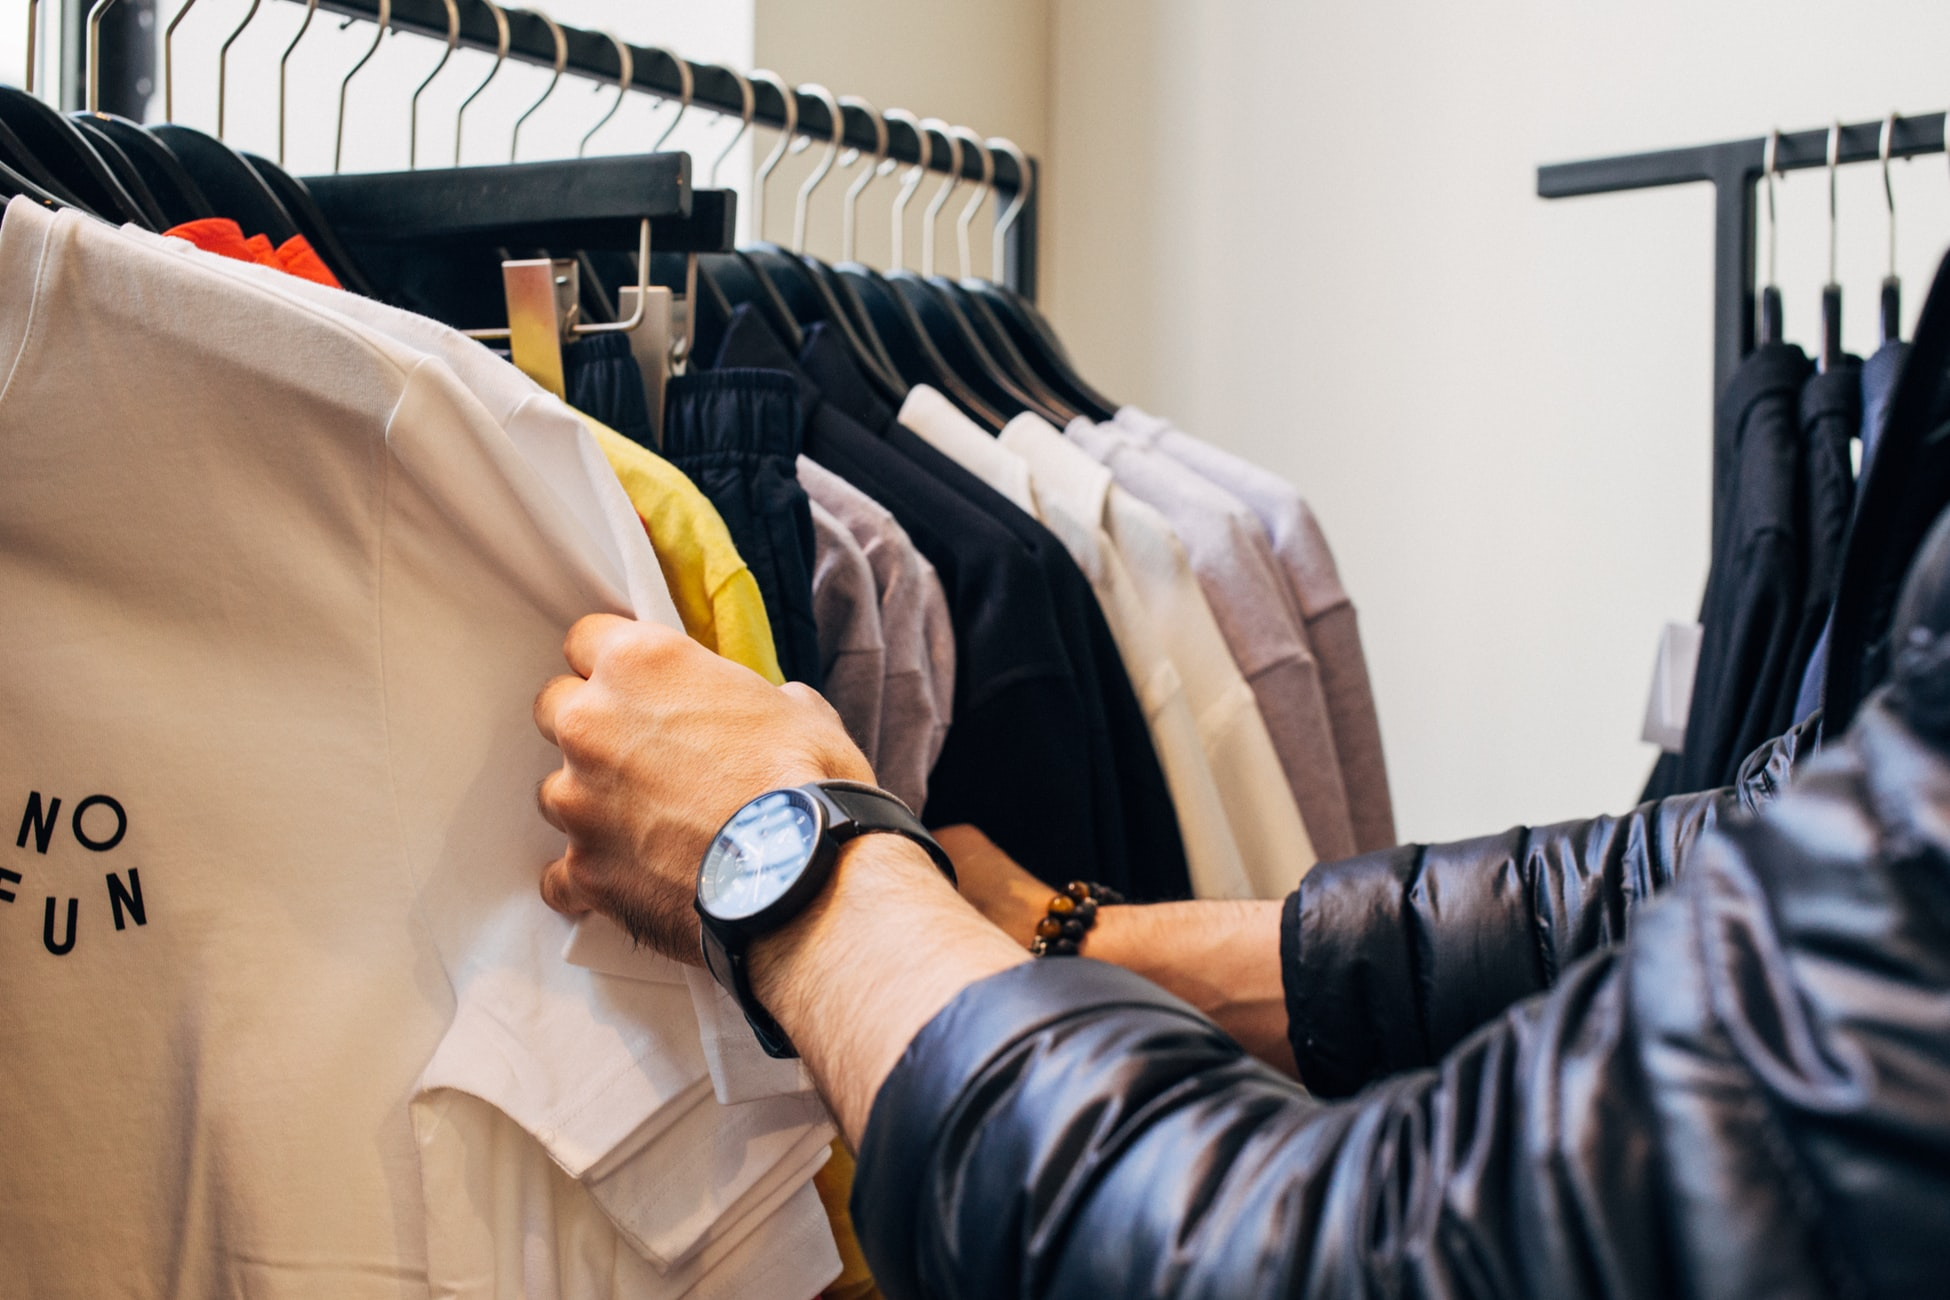 How Fashion Merchandising is Evolving Amid Covid-19 Concerns